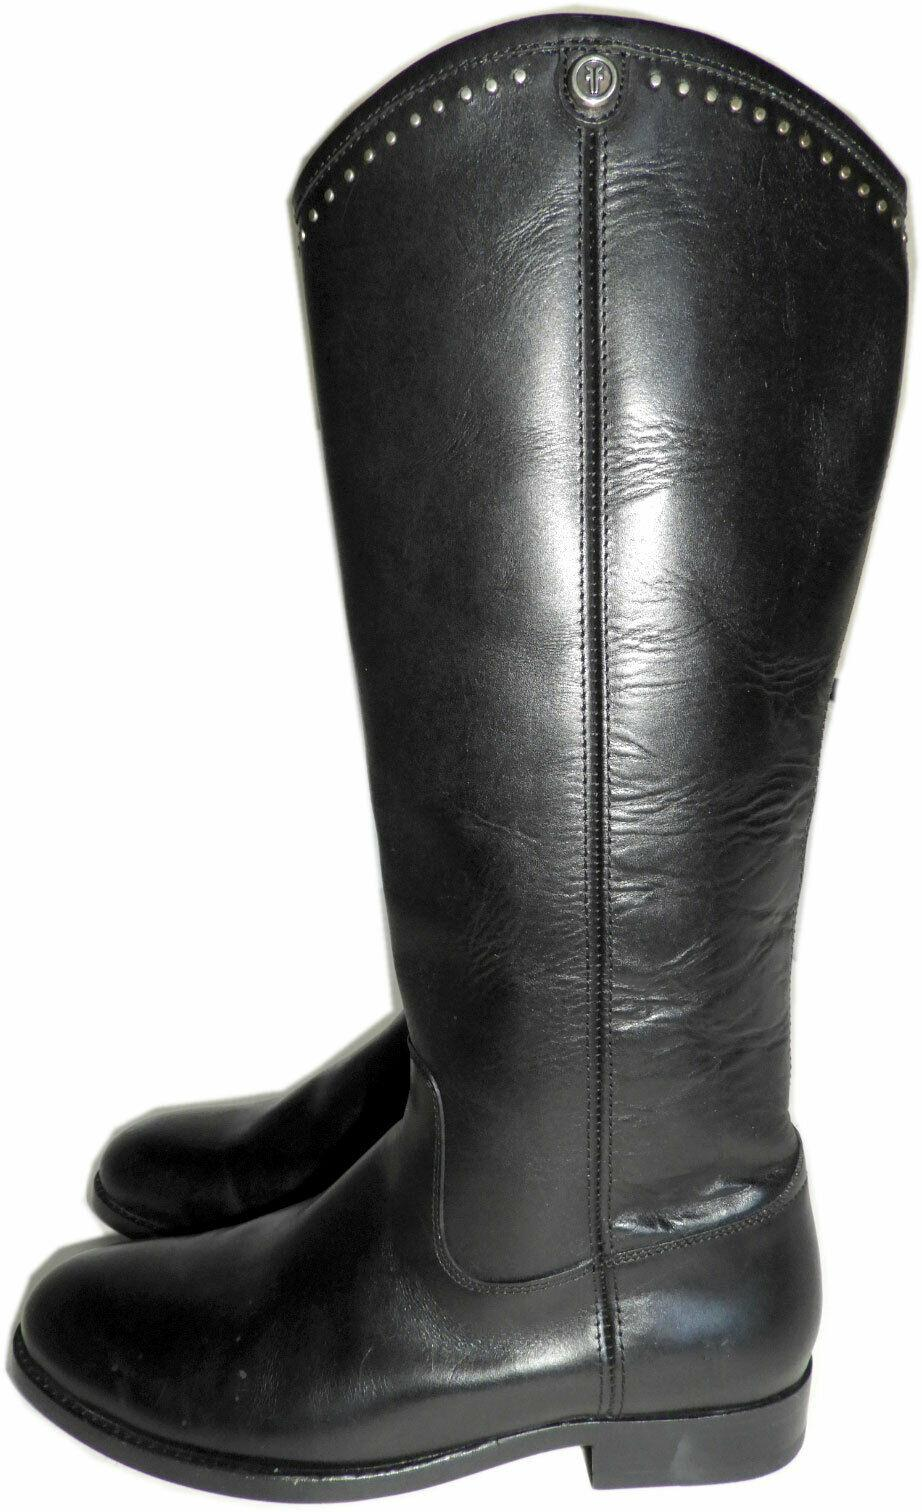 Frye Melissa Button Boot Riding Equestrian Black Leather Studde Pull Booties 6.5